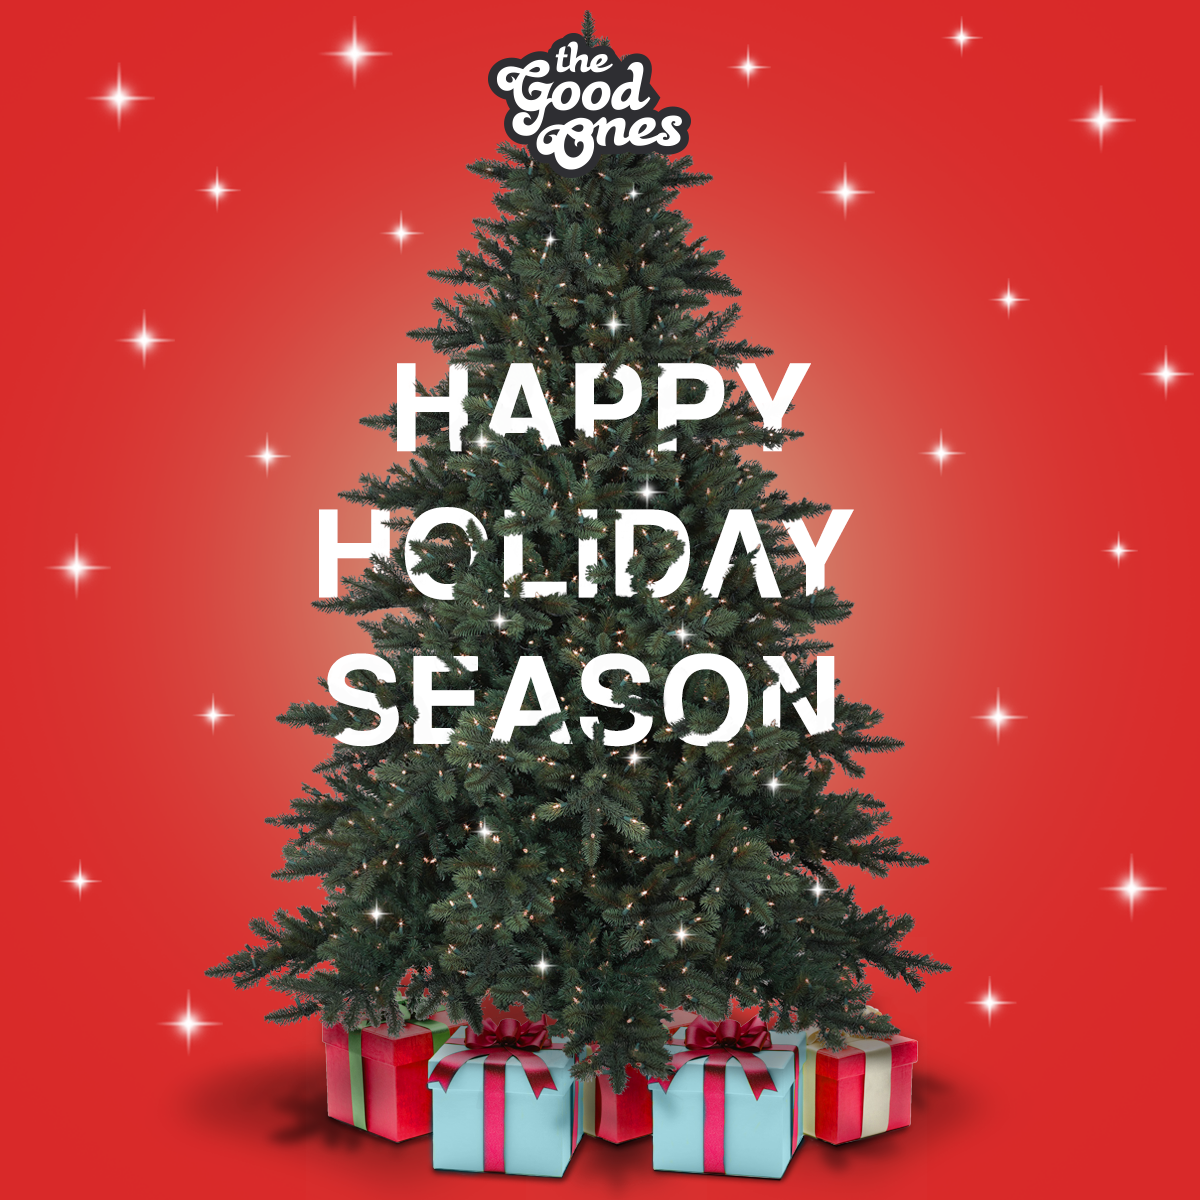 We are TheGoodOnes, not only at Christmas. Happy Holiday Season!